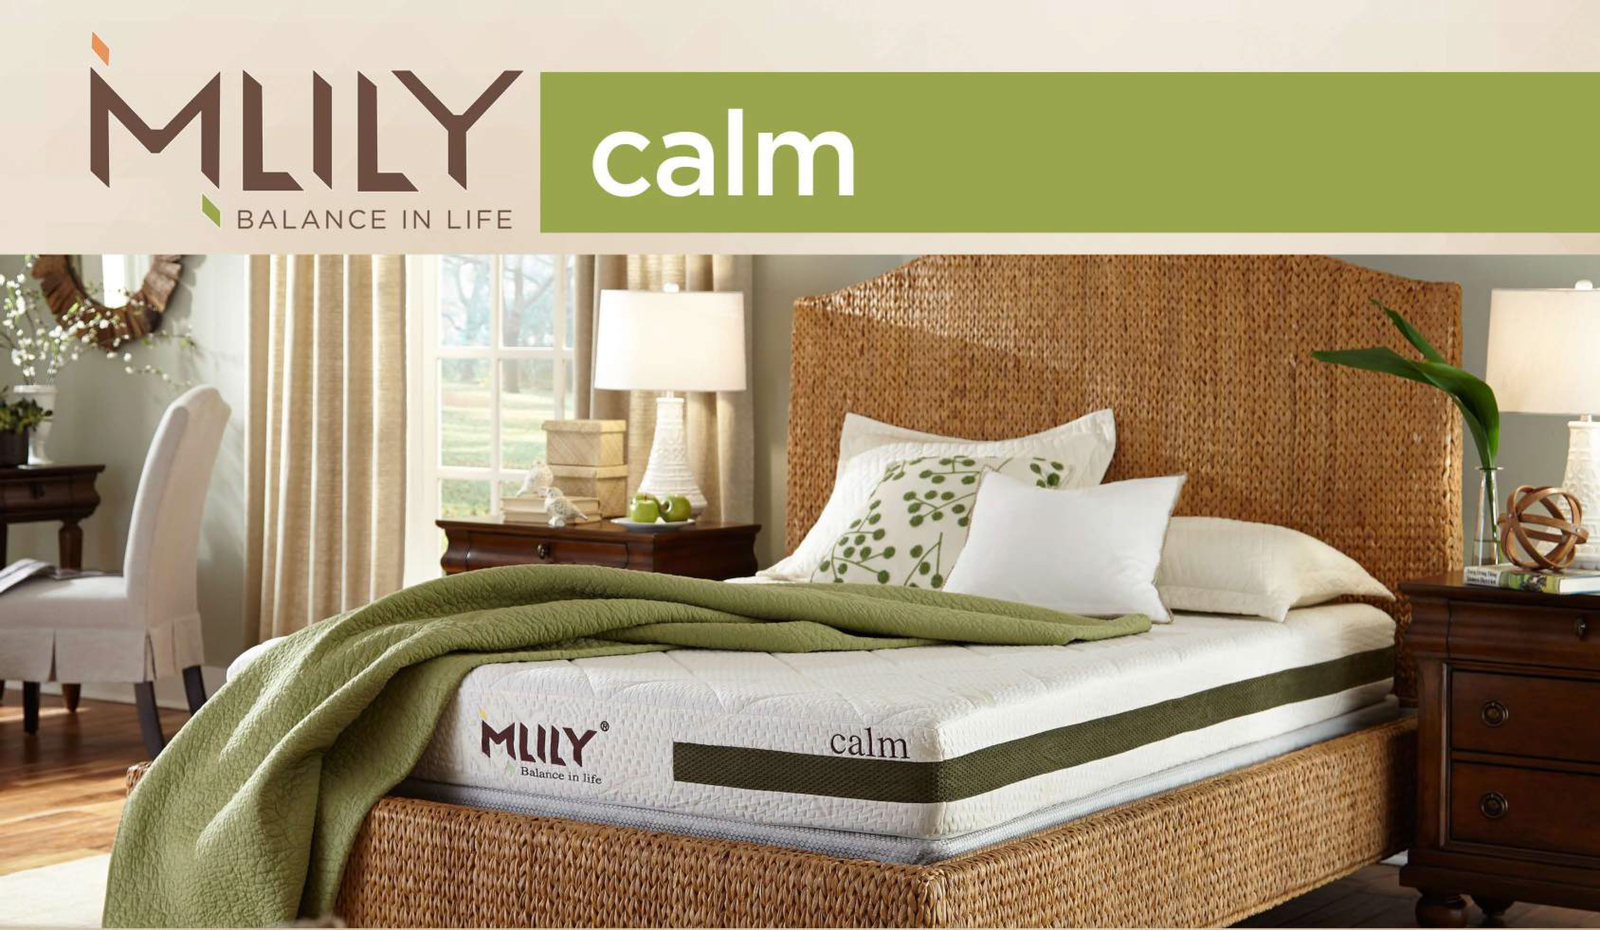 MLILY Memory Foam Mattress - Calm - Queen